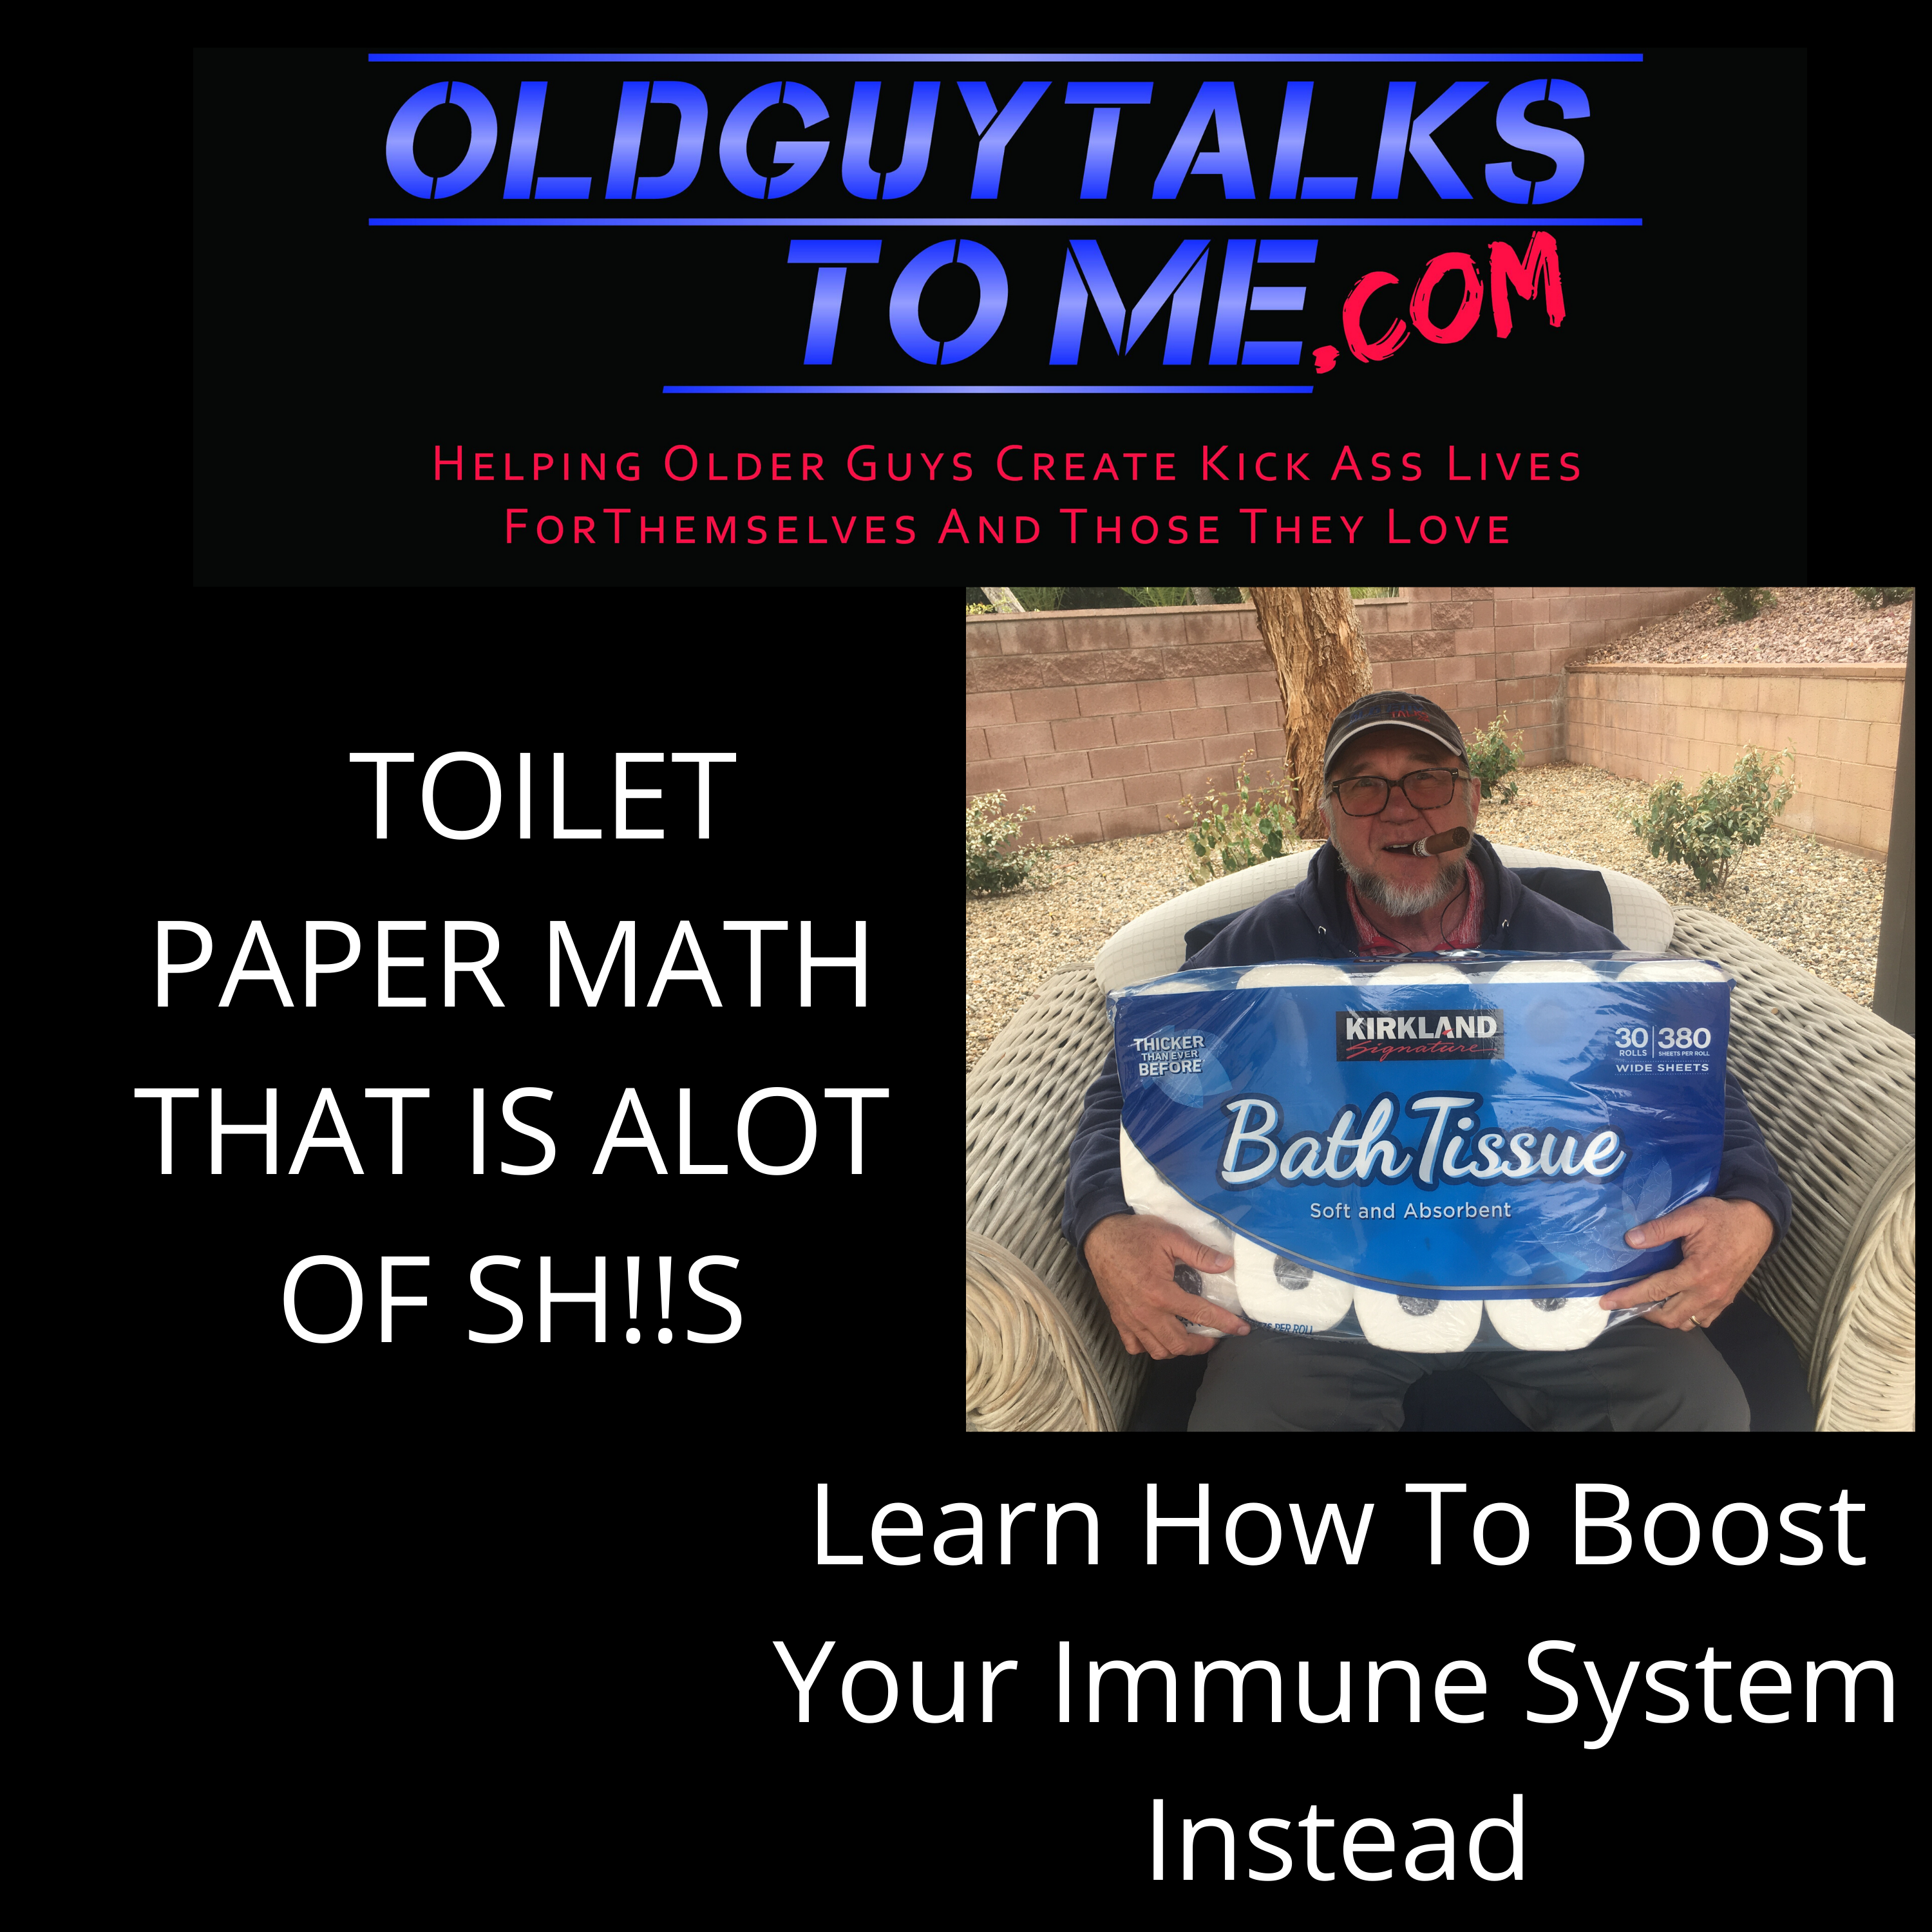 OldGuyTalksToMe - TOILET PAPER MATH  CORONA VIRUS  IMMUNE SYSTEM BOOSTER THAT IS A LOT OF SH!!!